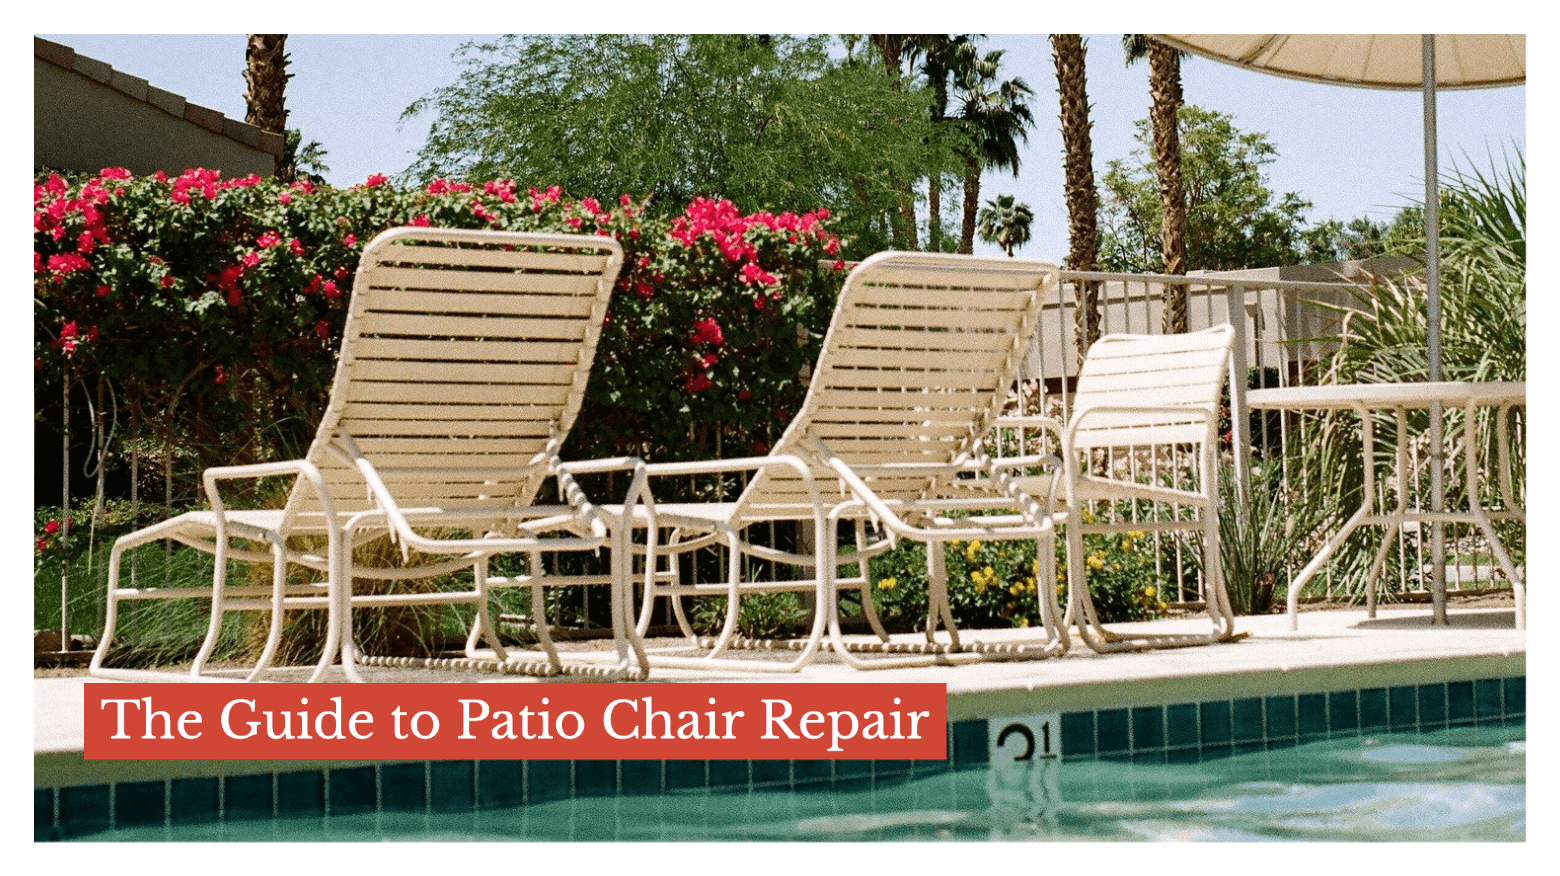 The Guide to Patio Chair Repair